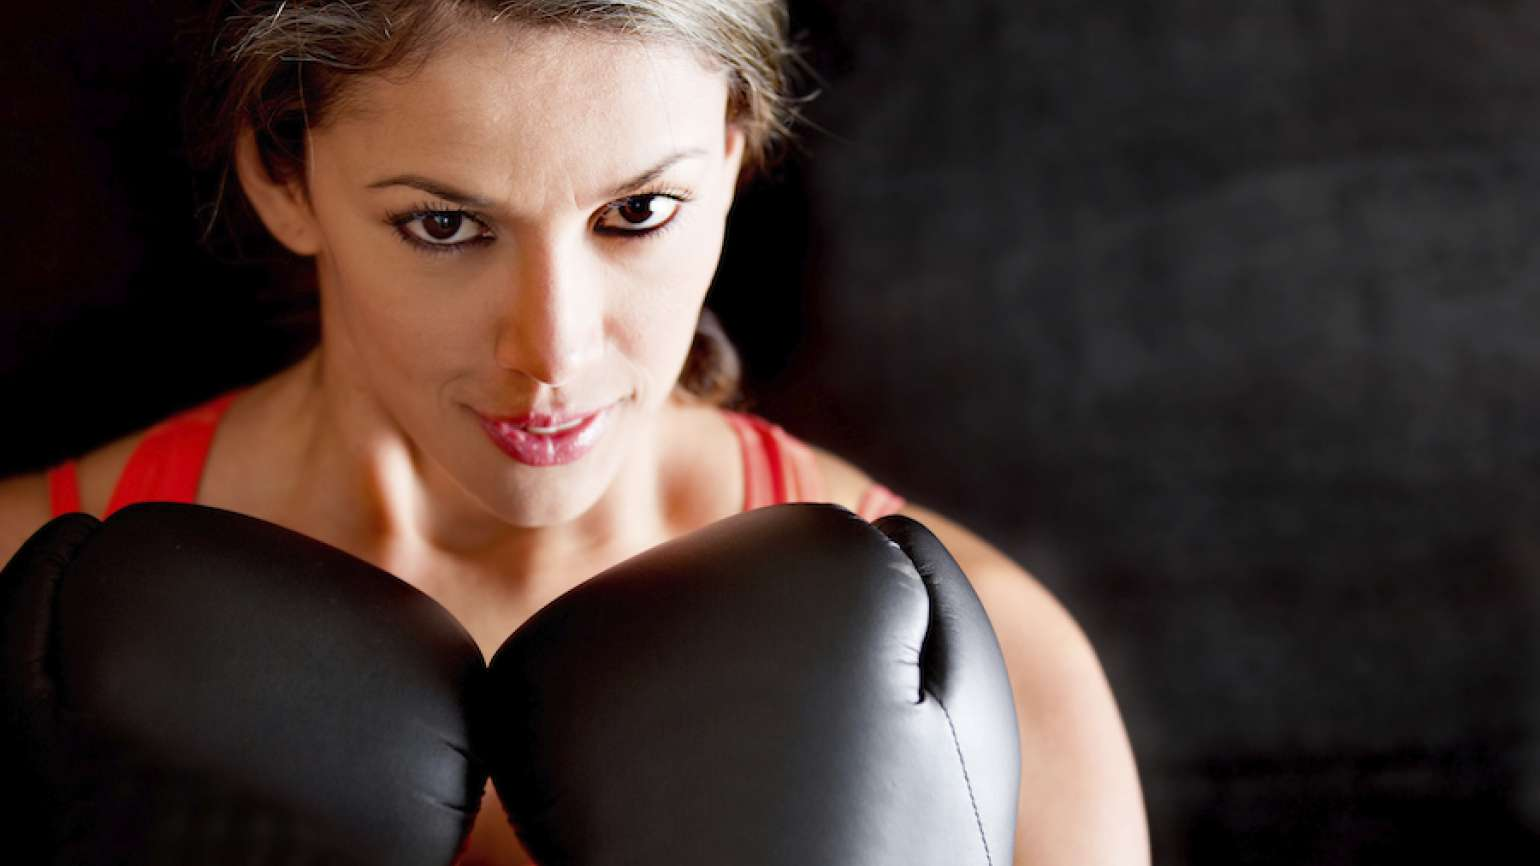 Woman wearing boxing gloves. Thinkstock.